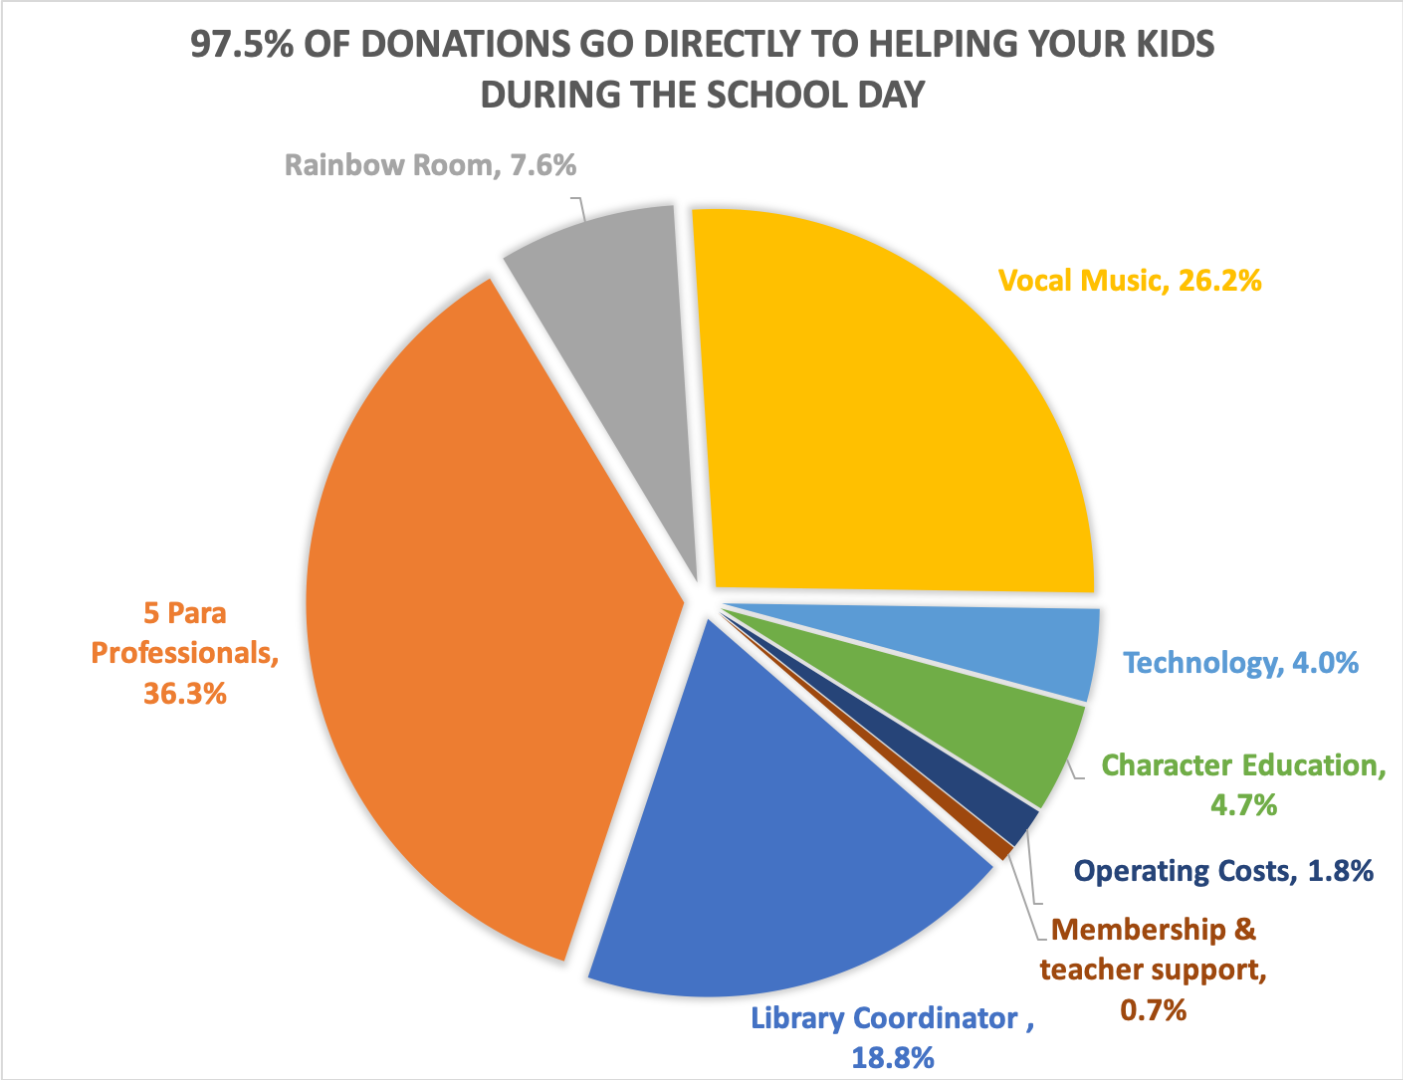 99.3% of Funds Go To Kids